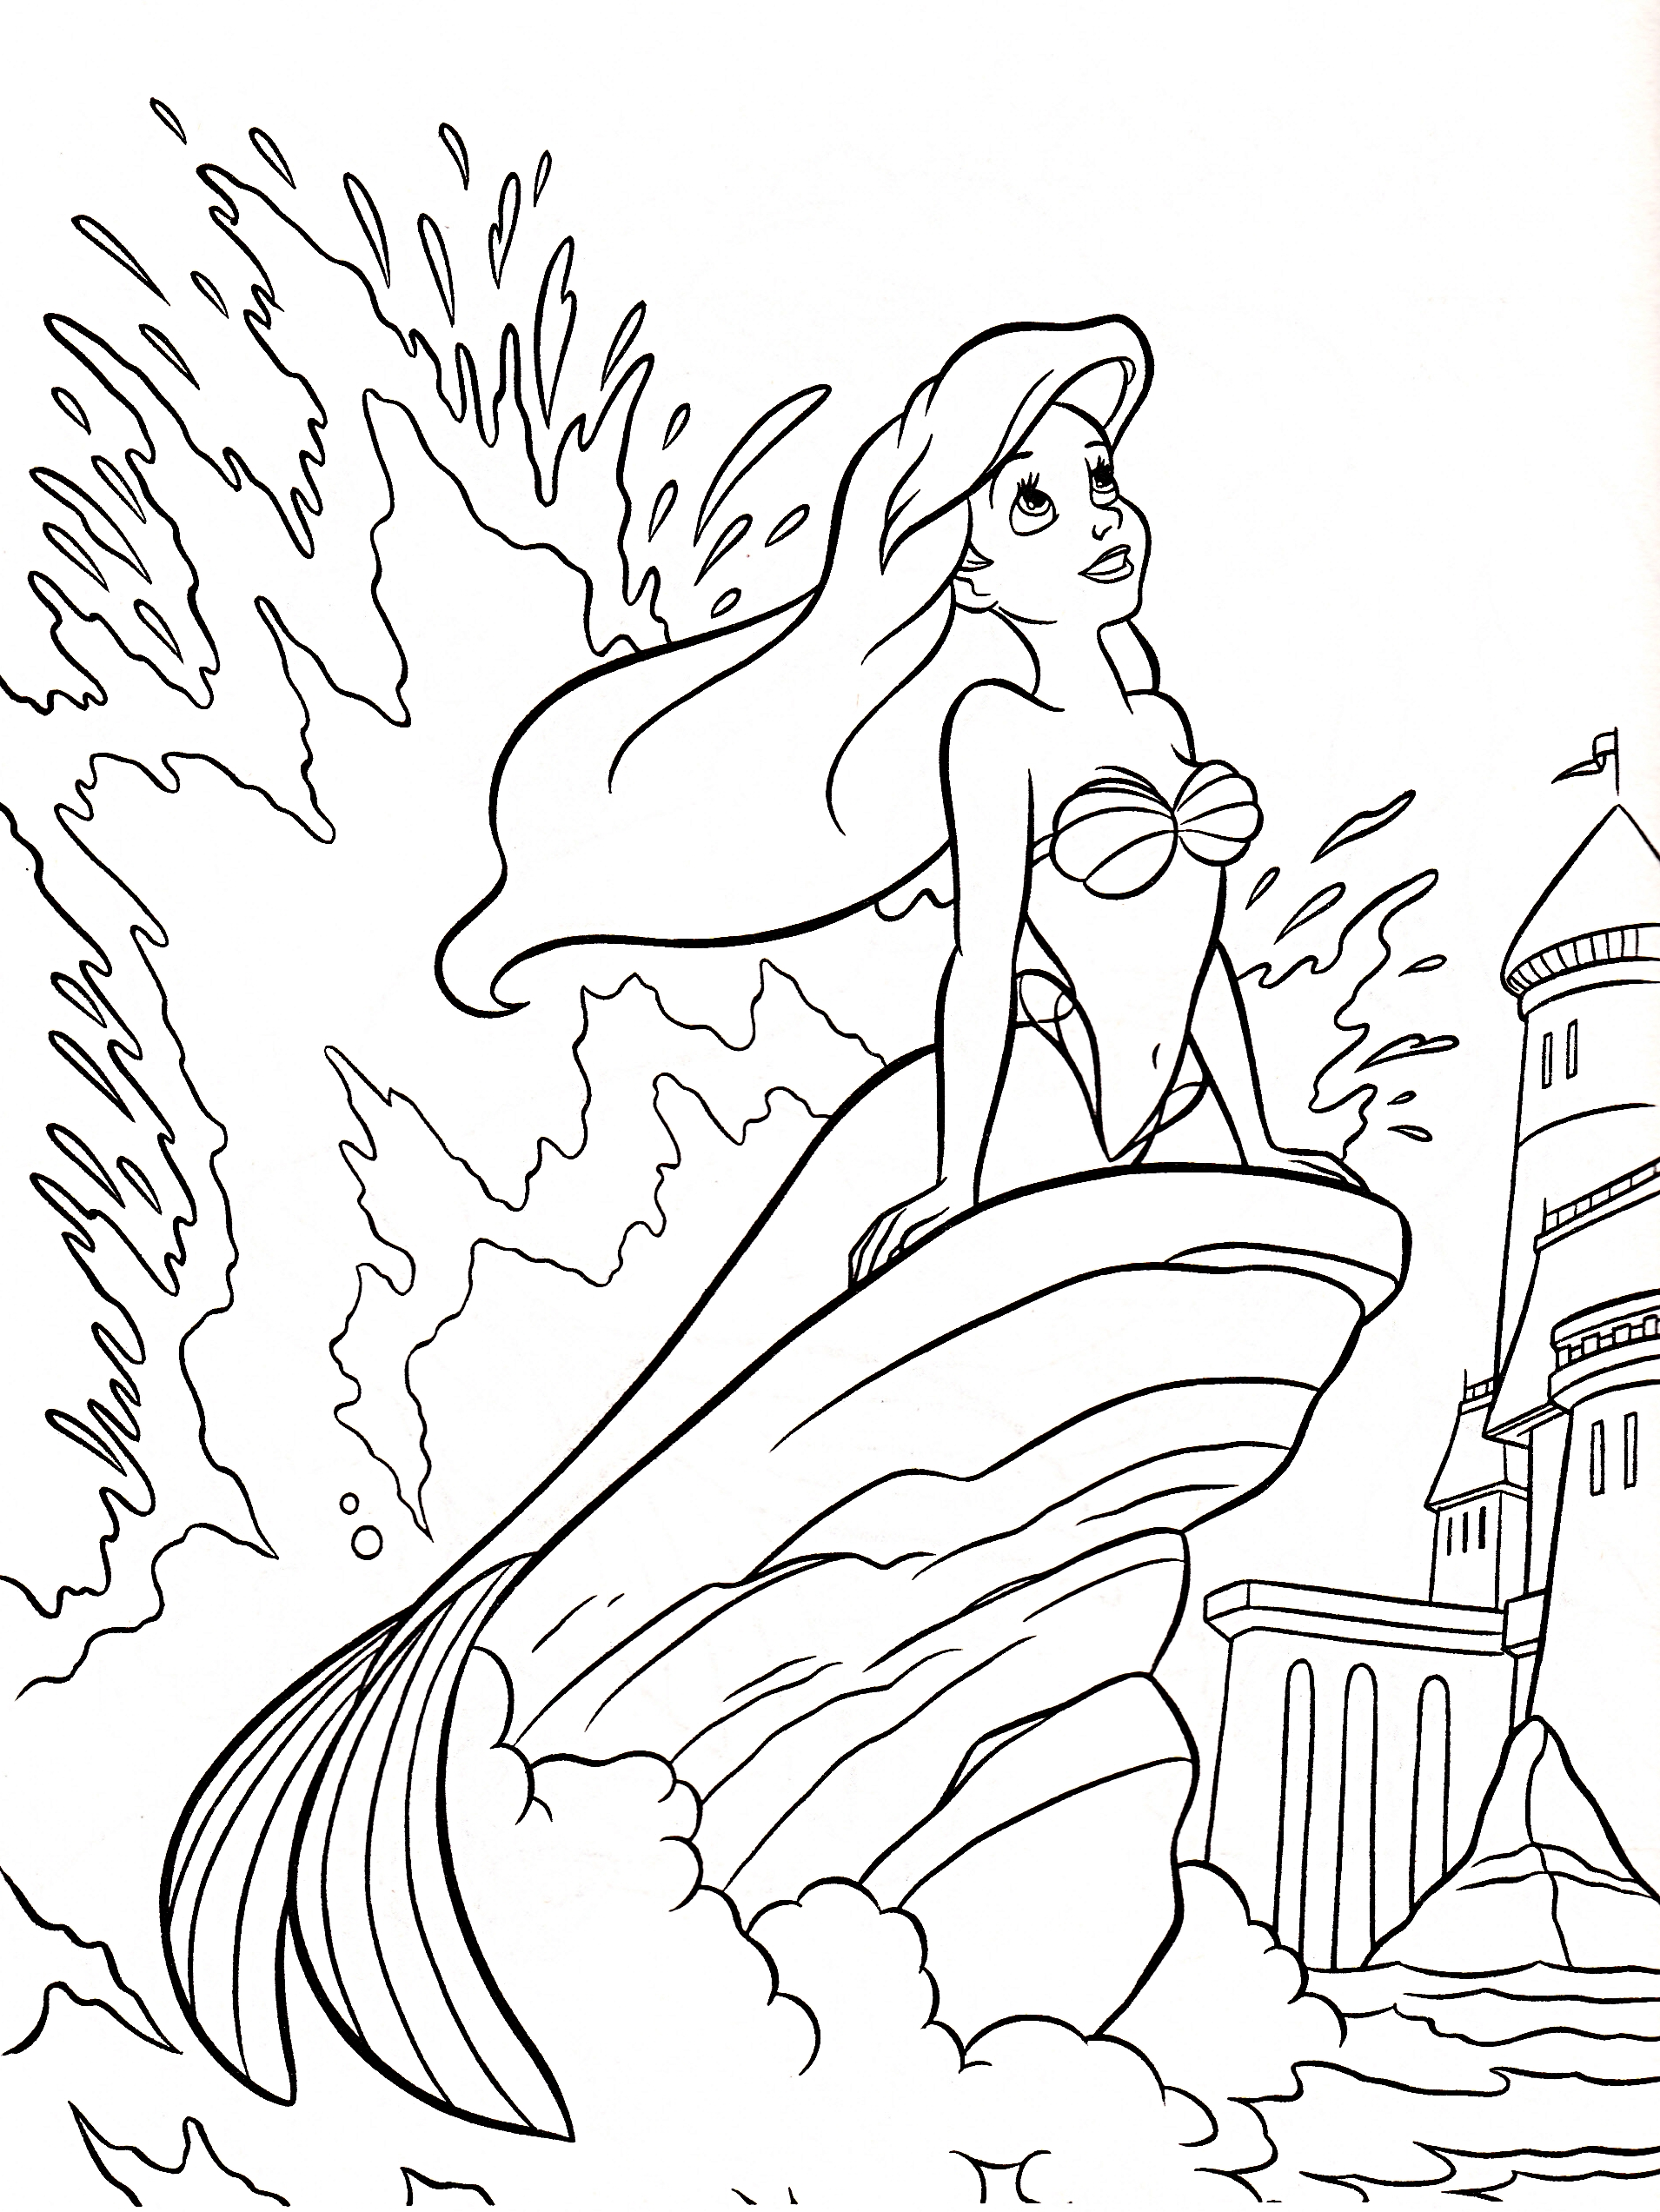 disney ariel coloring pages - photo#33